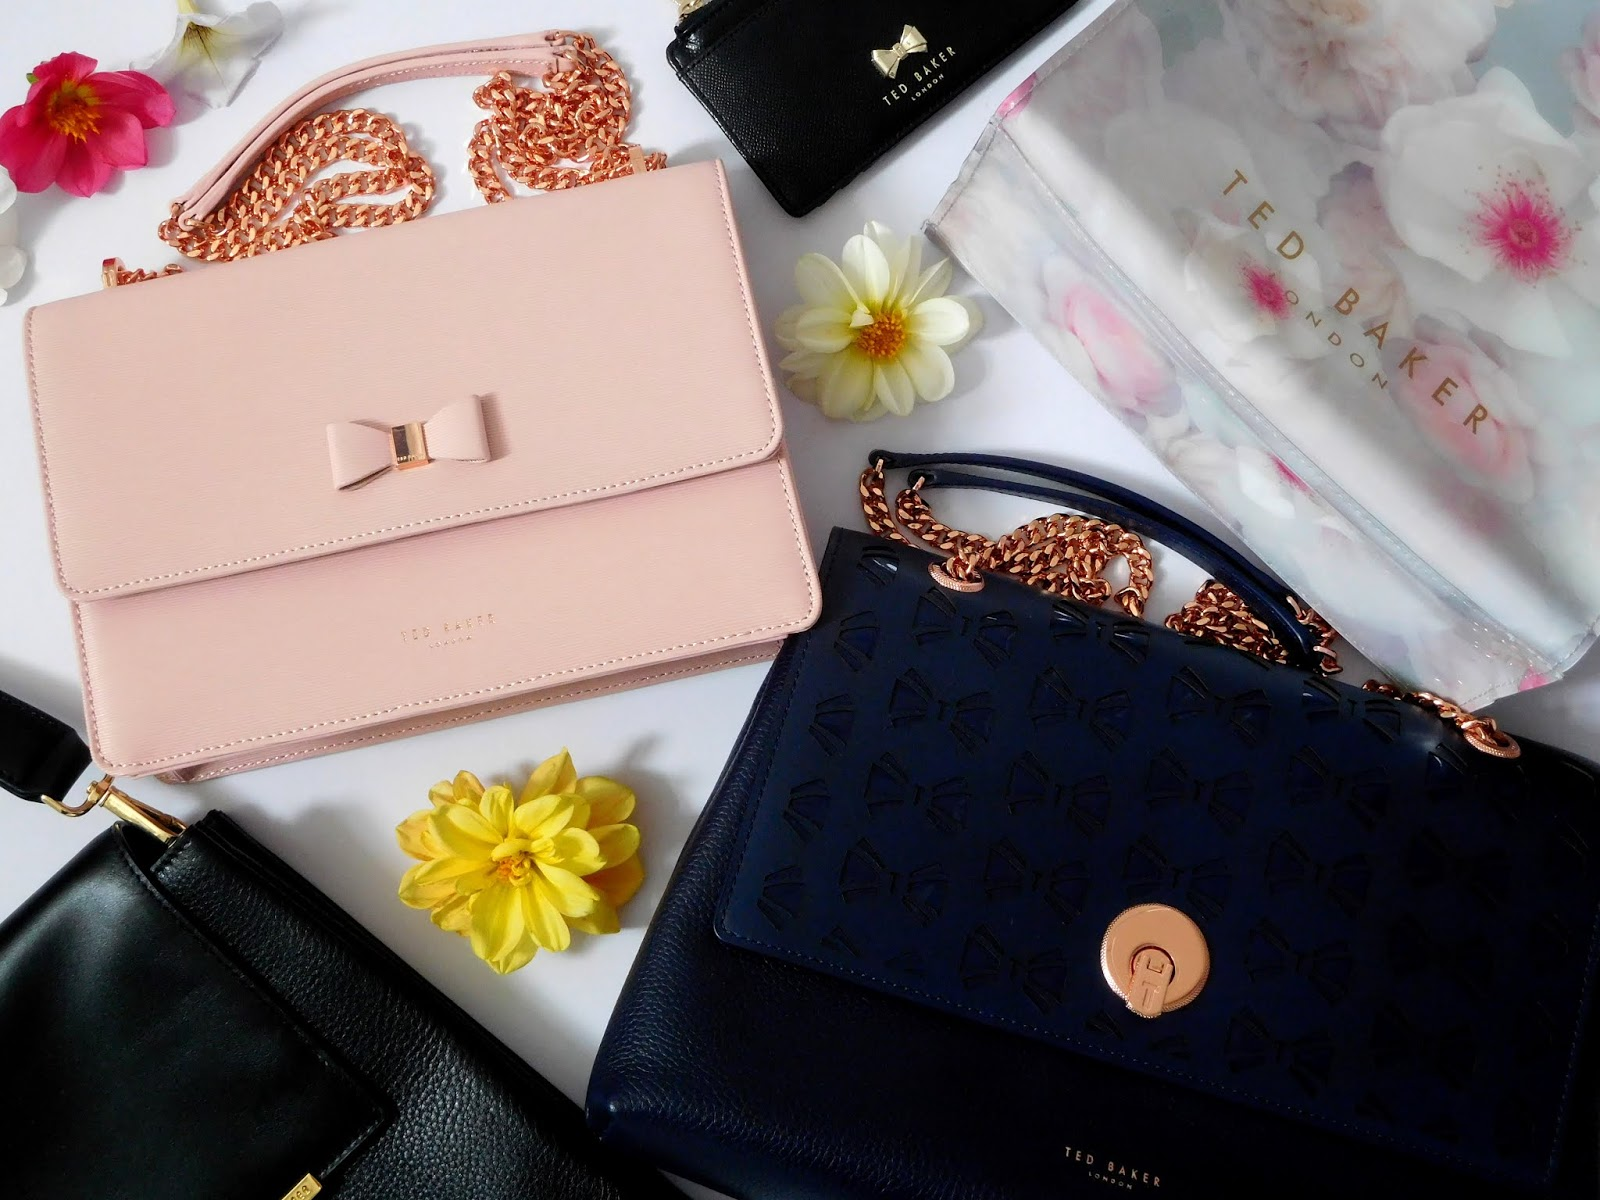 I Invest My Money In Ted Baker Handbags Because Of Their Amazing Quality And Know Through Experience They Are Really Durable Lasting For Years Without